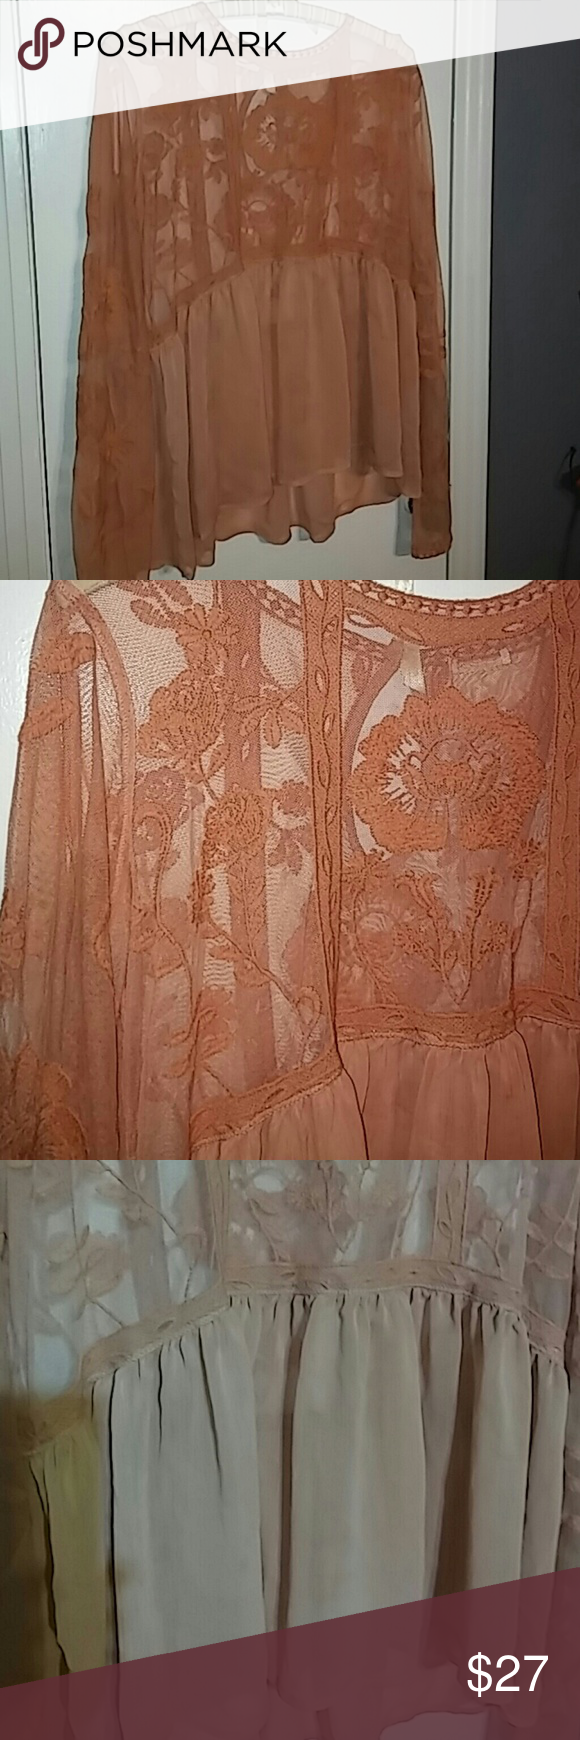 Sheer embroidered blouse Sheer embroidered blouse (never worn) Express Tops Blouses